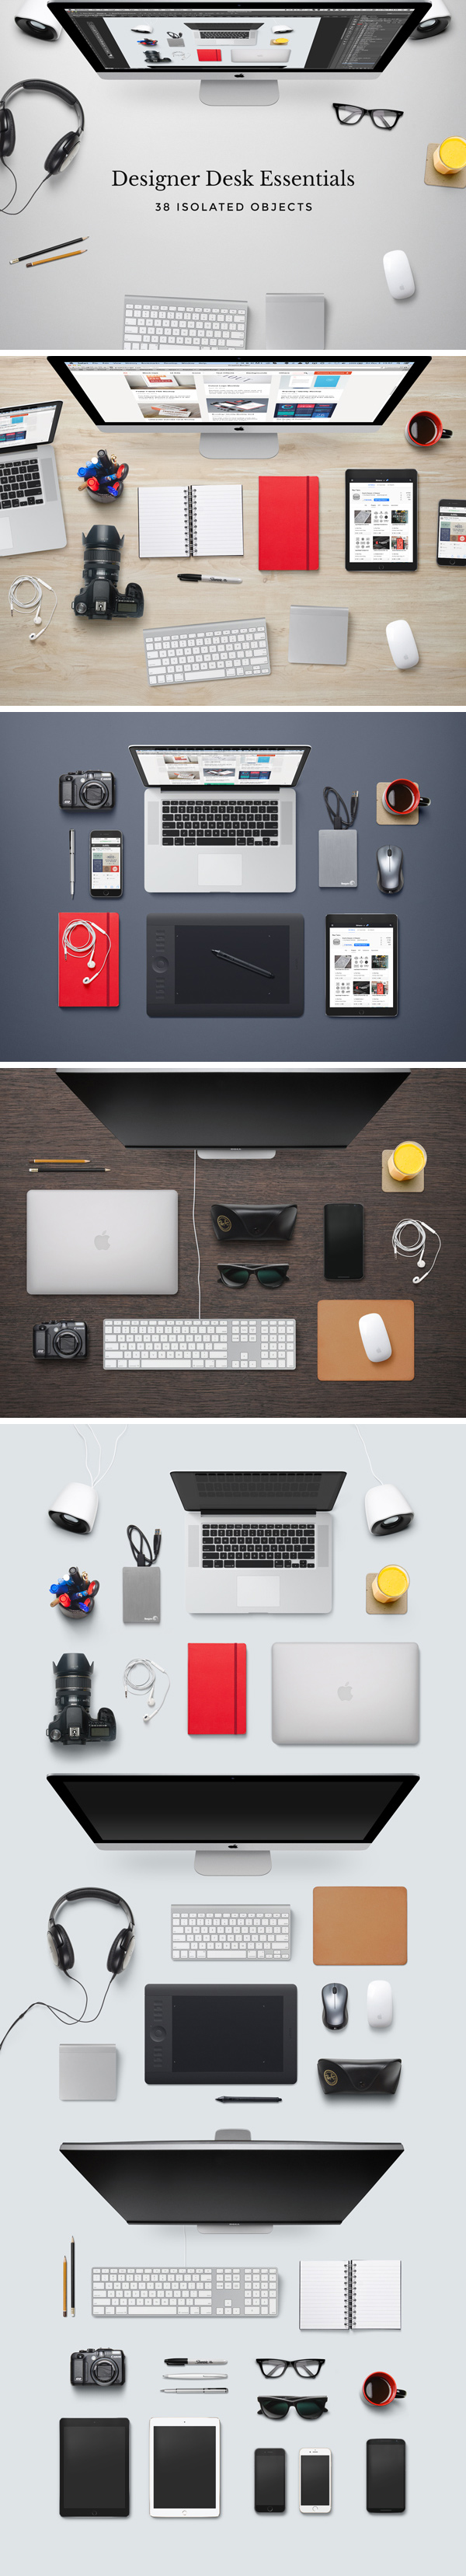 designer-desk-essentials